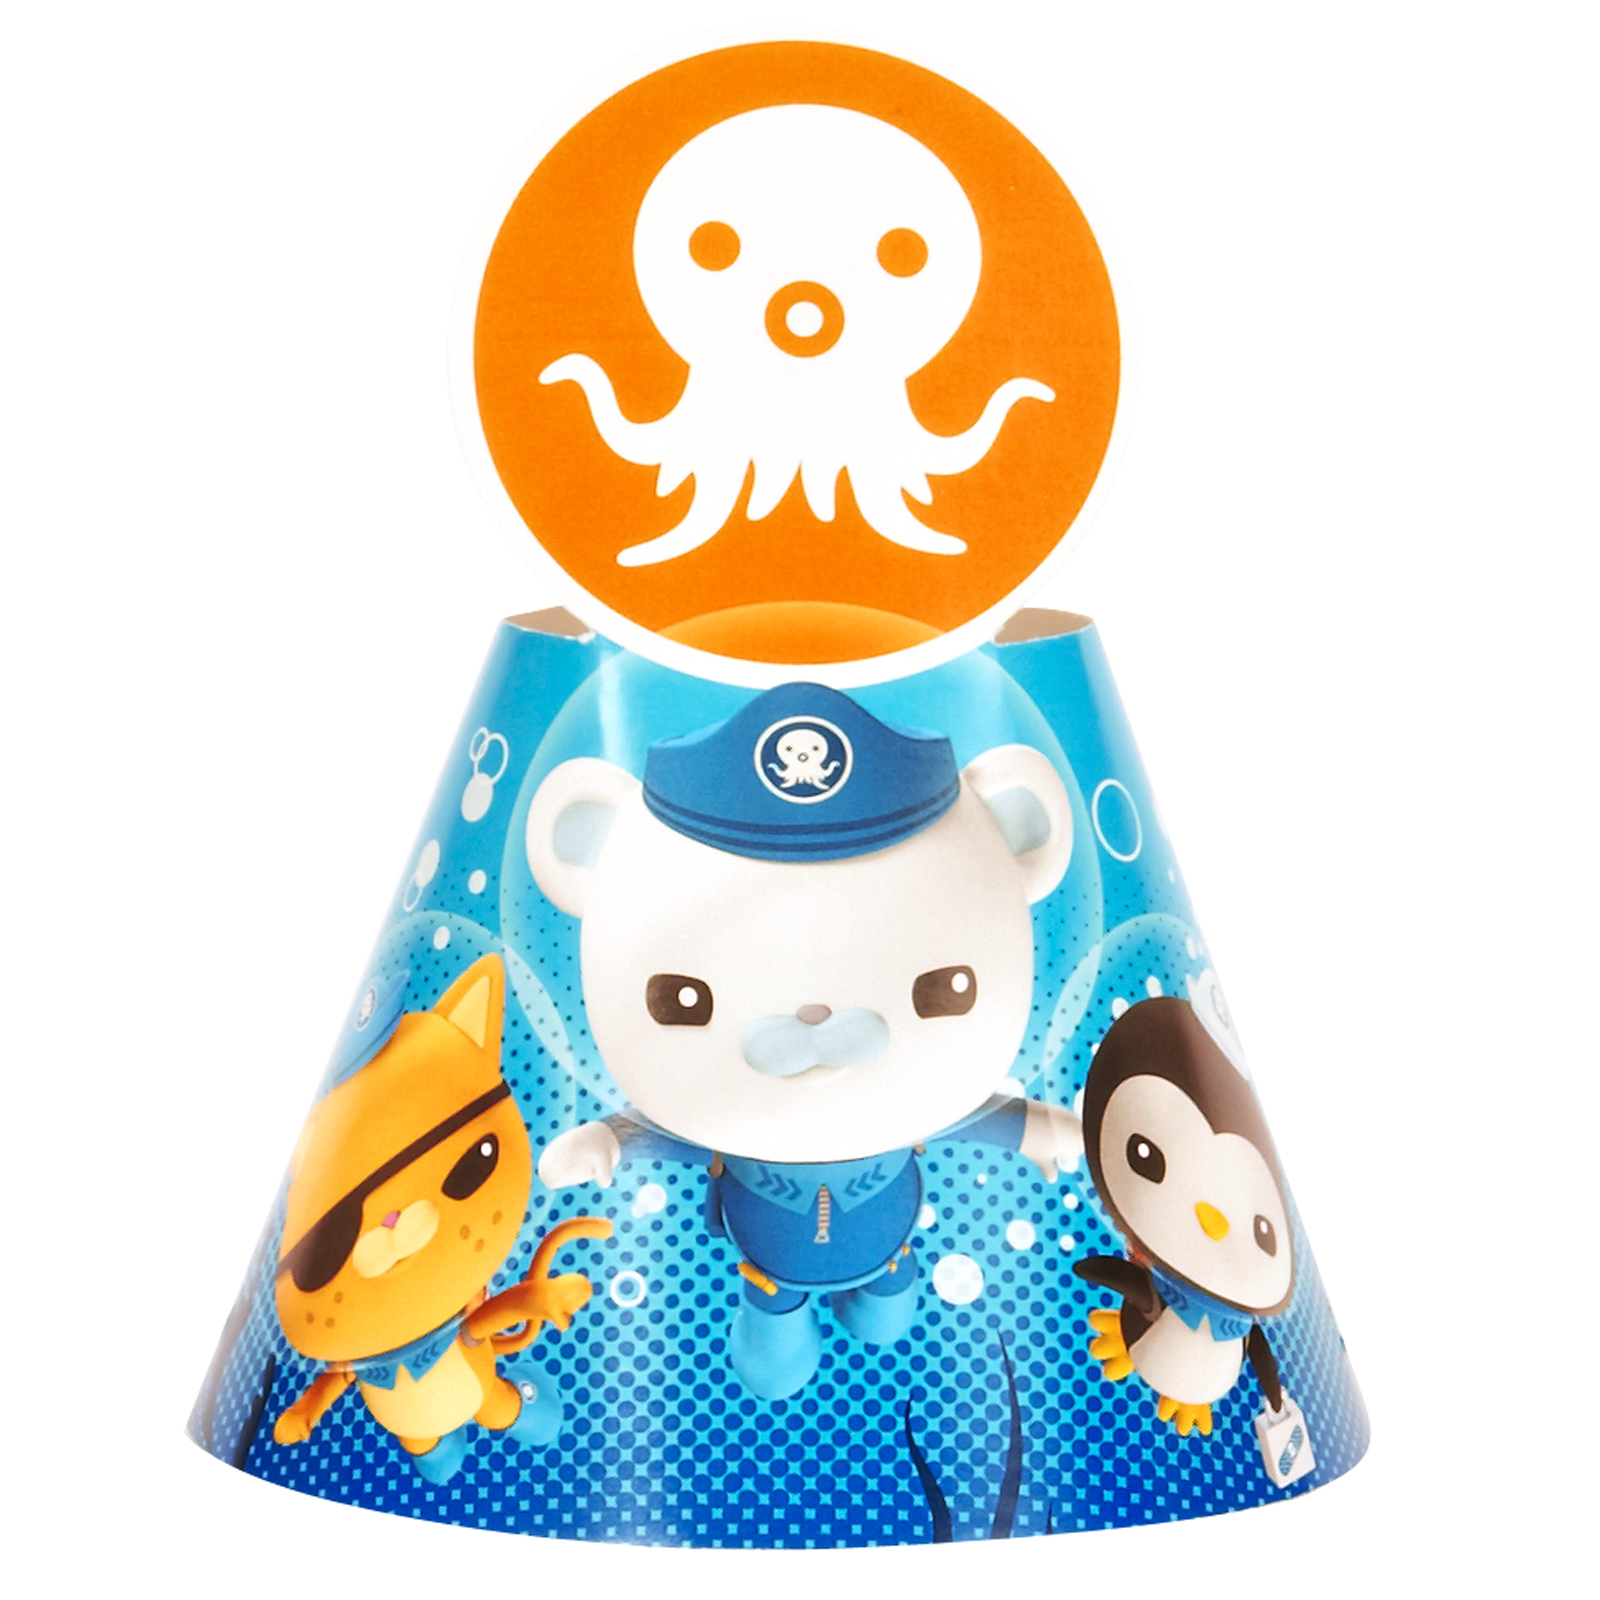 Octonauts Party Supplies 16 Pack Cone Party Hats